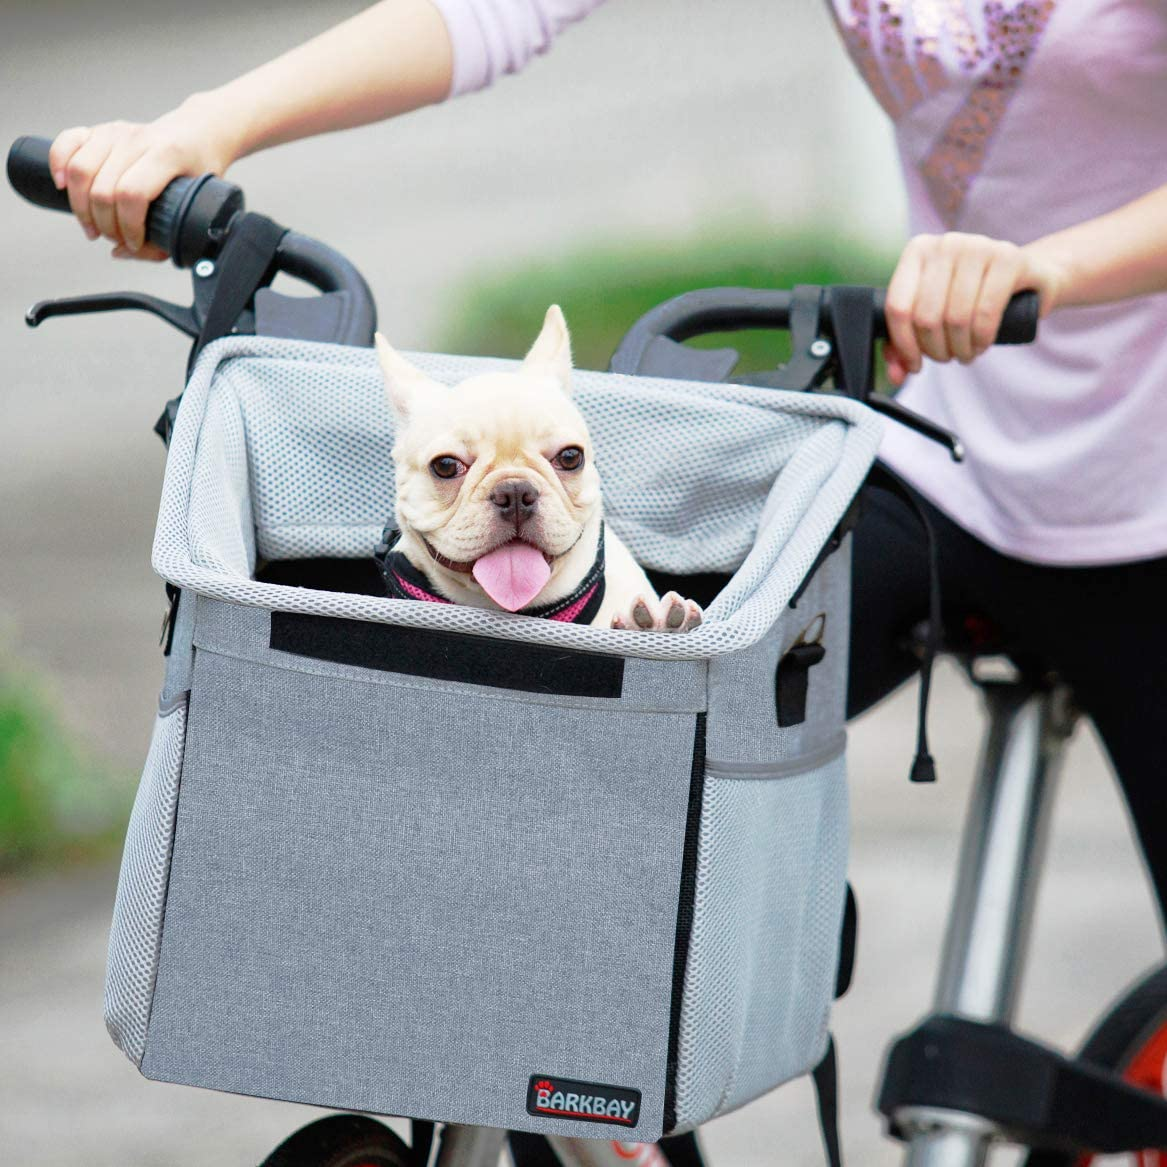 Pet Carrier Bicycle Basket Bag Pet Carrier Booster Backpack for Dogs and Cats with Big Side Pockets,Comfy Padded Shoulder Strap,Travel with Your Pet Safety